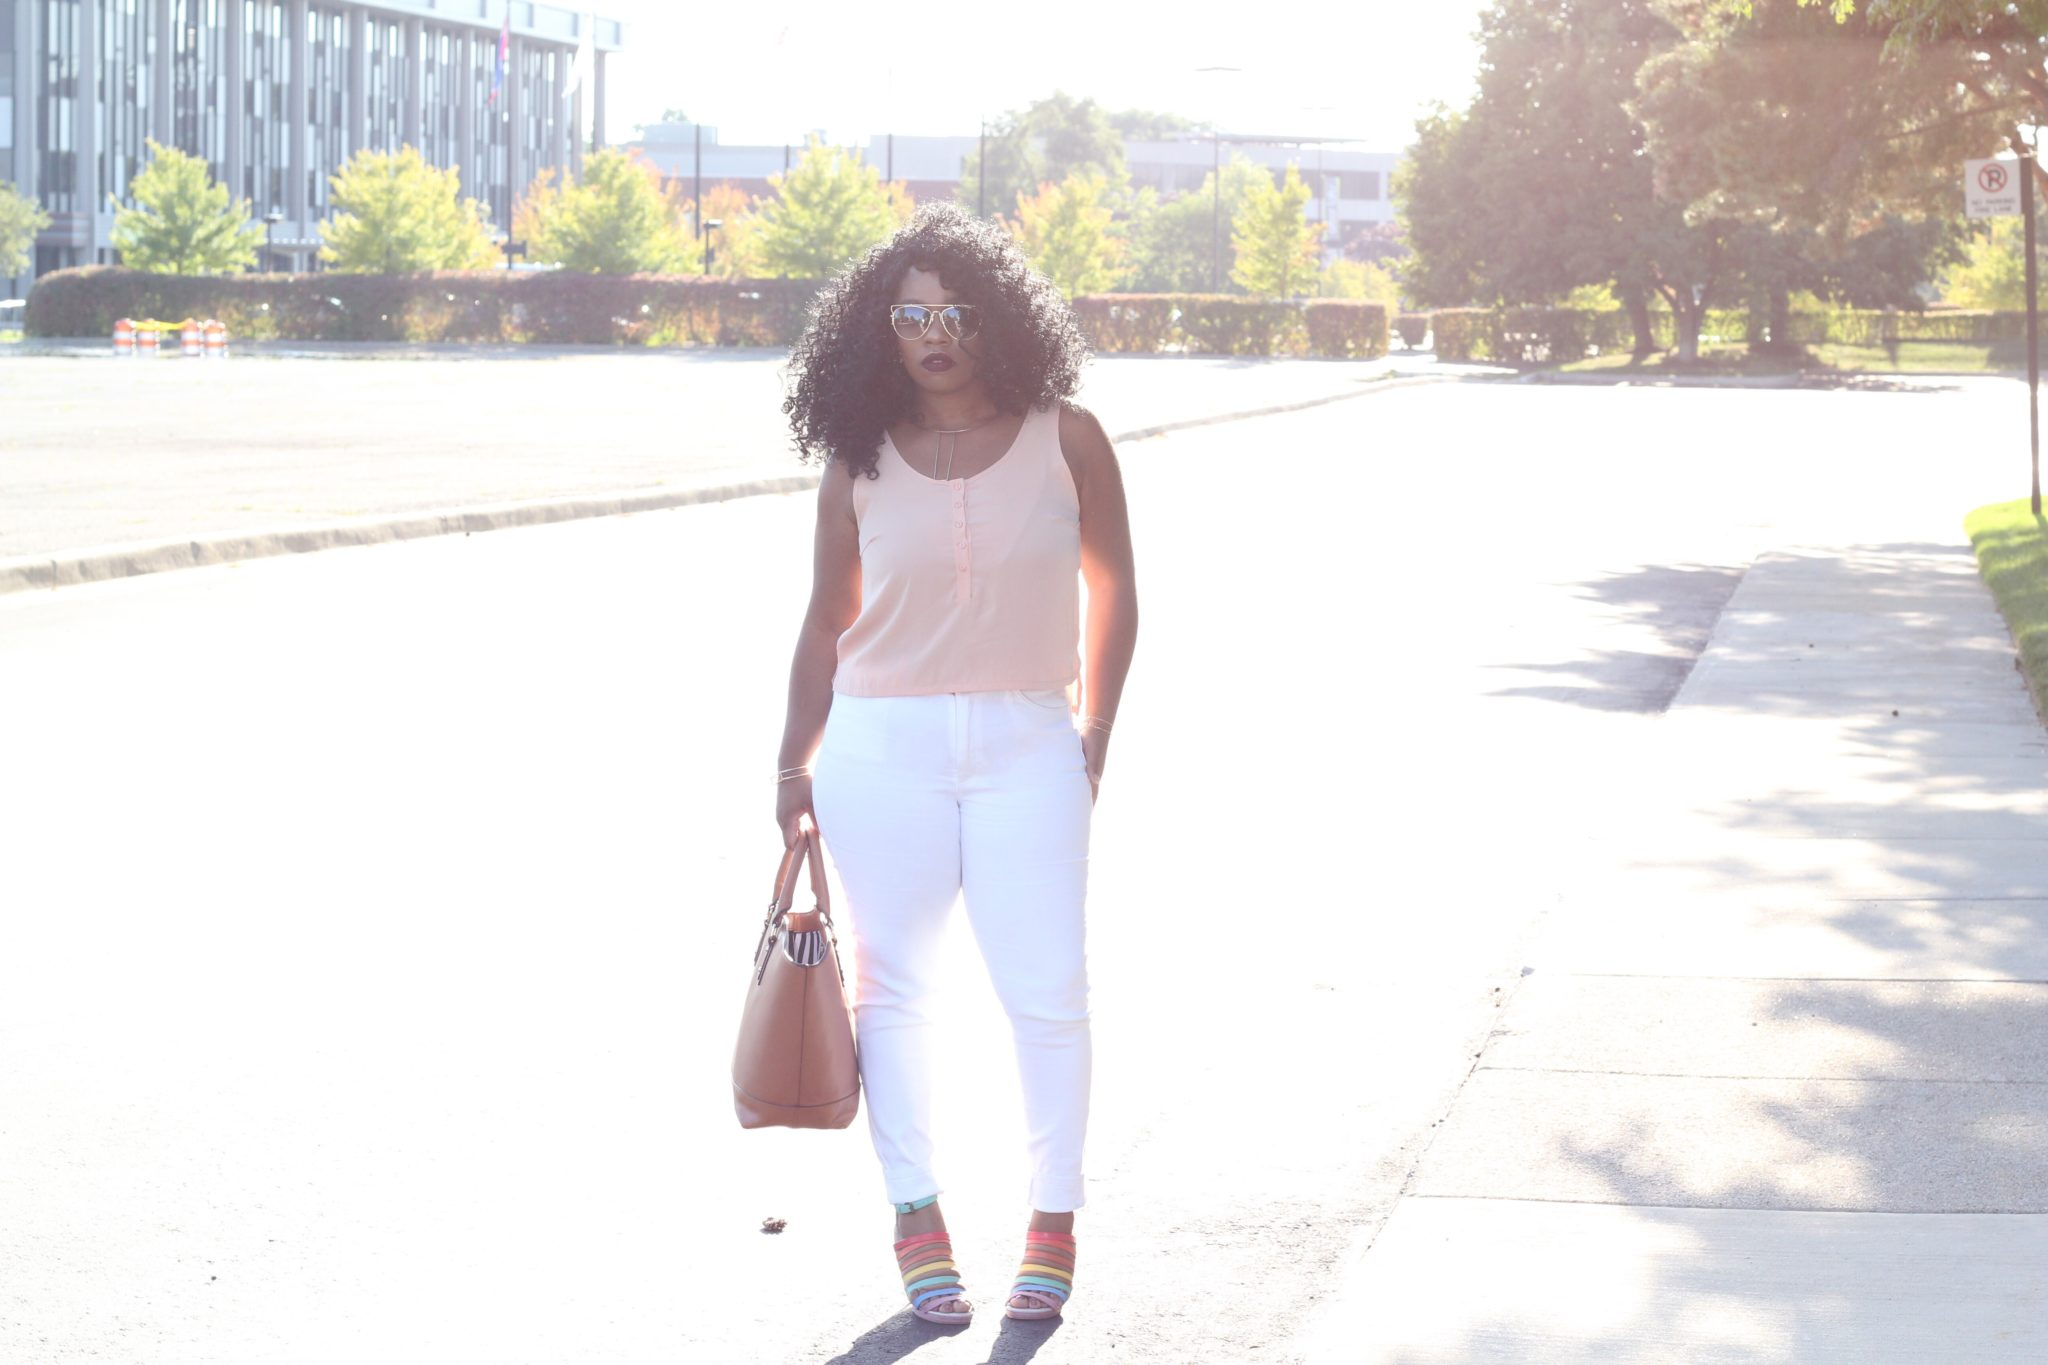 publish_snapshot-3-5 Living for the Weekend! Fashion Fashion Nova Forever 21 Jeffrey Campbell Shoes Justfab OOTD Styling Thrifting Uncategorized